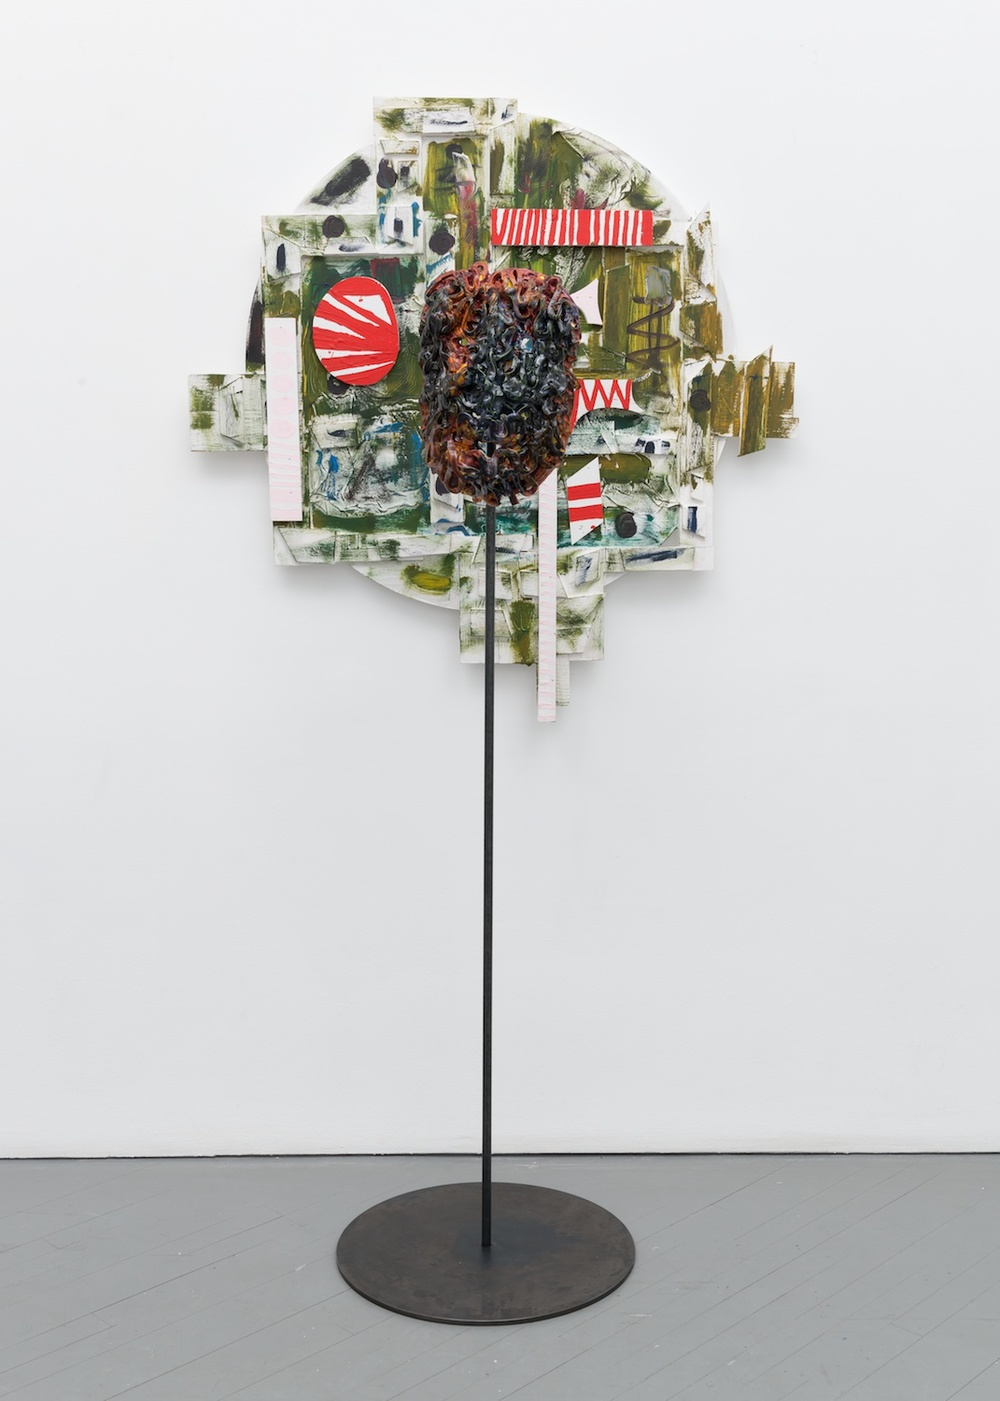 William J. O'Brien  Untitled  2013/2014 Mixed media on wood; Glazed ceramic on steel armature 43h x 44w in (painting); 64 ½h x 20w x 20d in (ceramic + stand) WOB906/WOB937